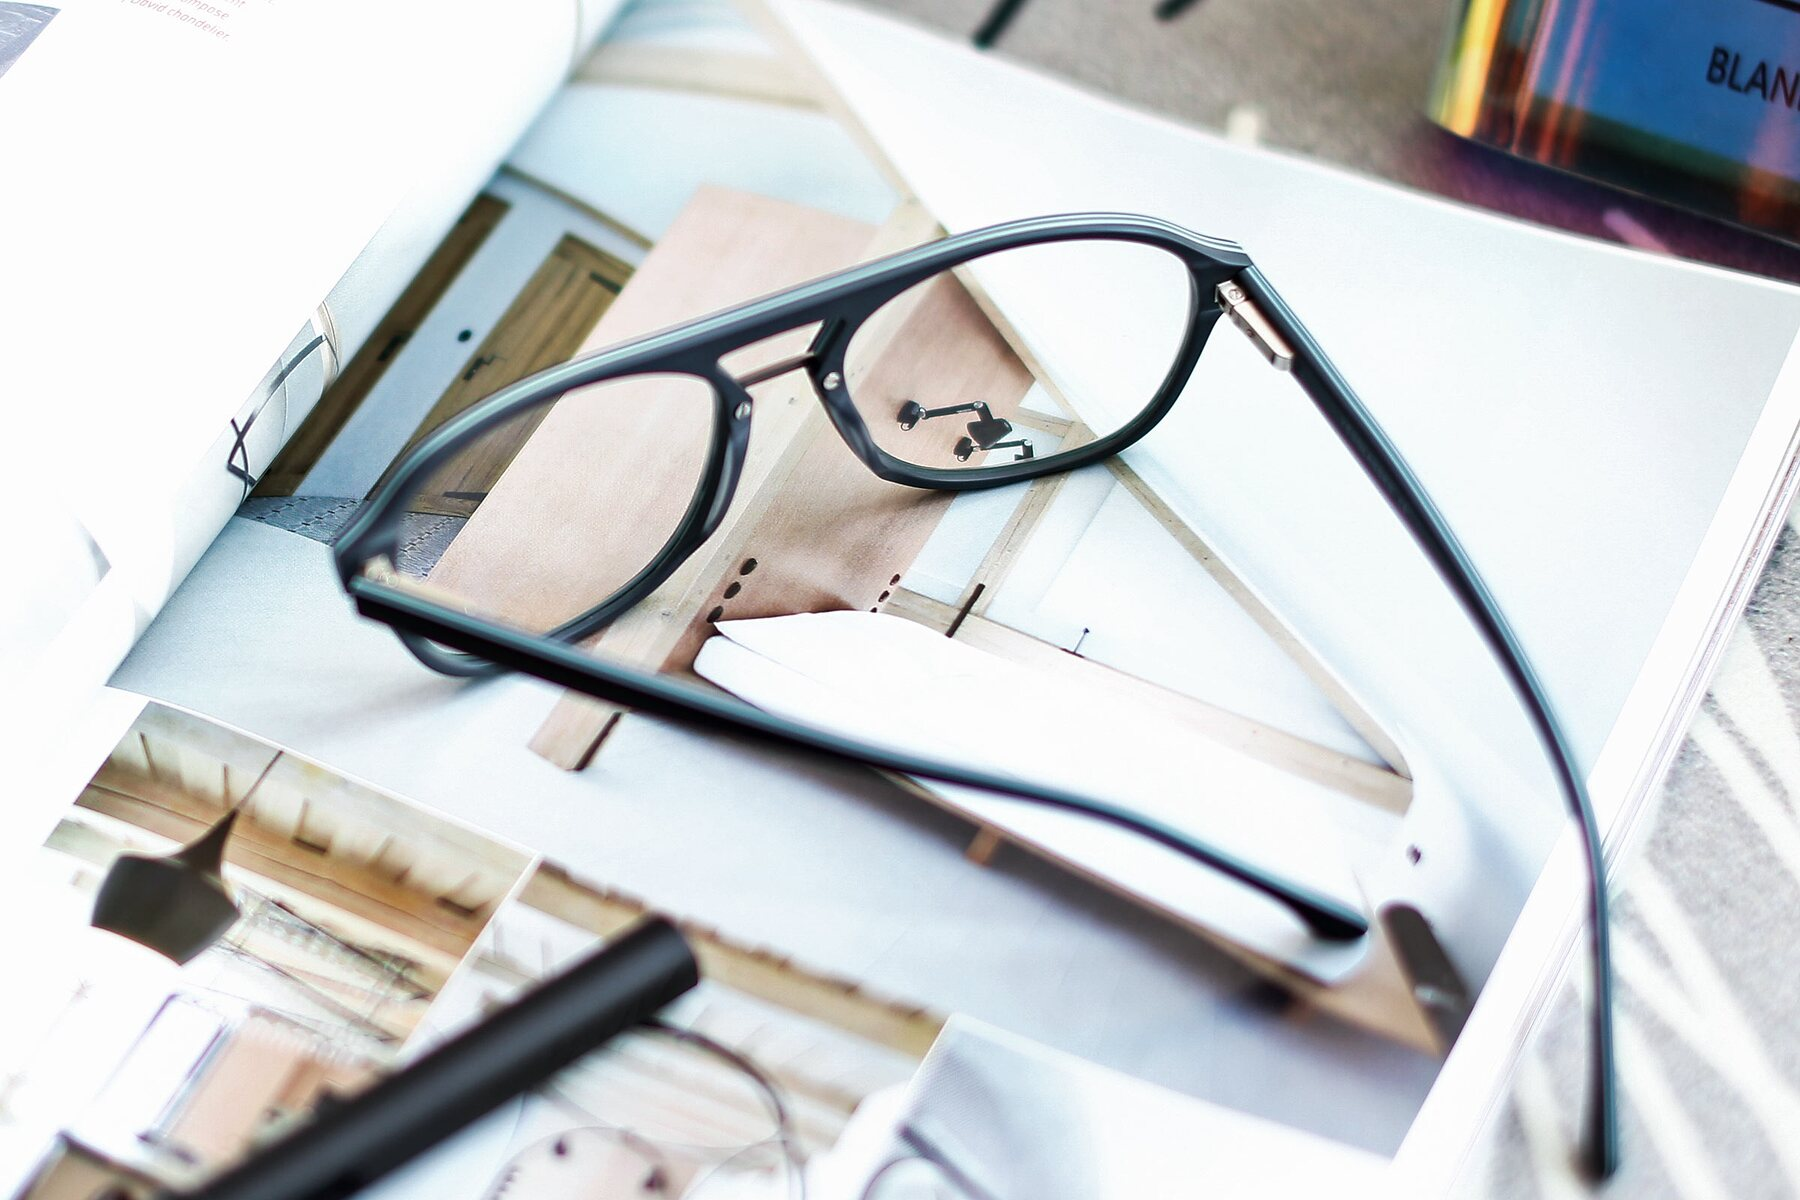 Lifestyle photography #2 of 17416 in Matt Black with Clear Eyeglass Lenses